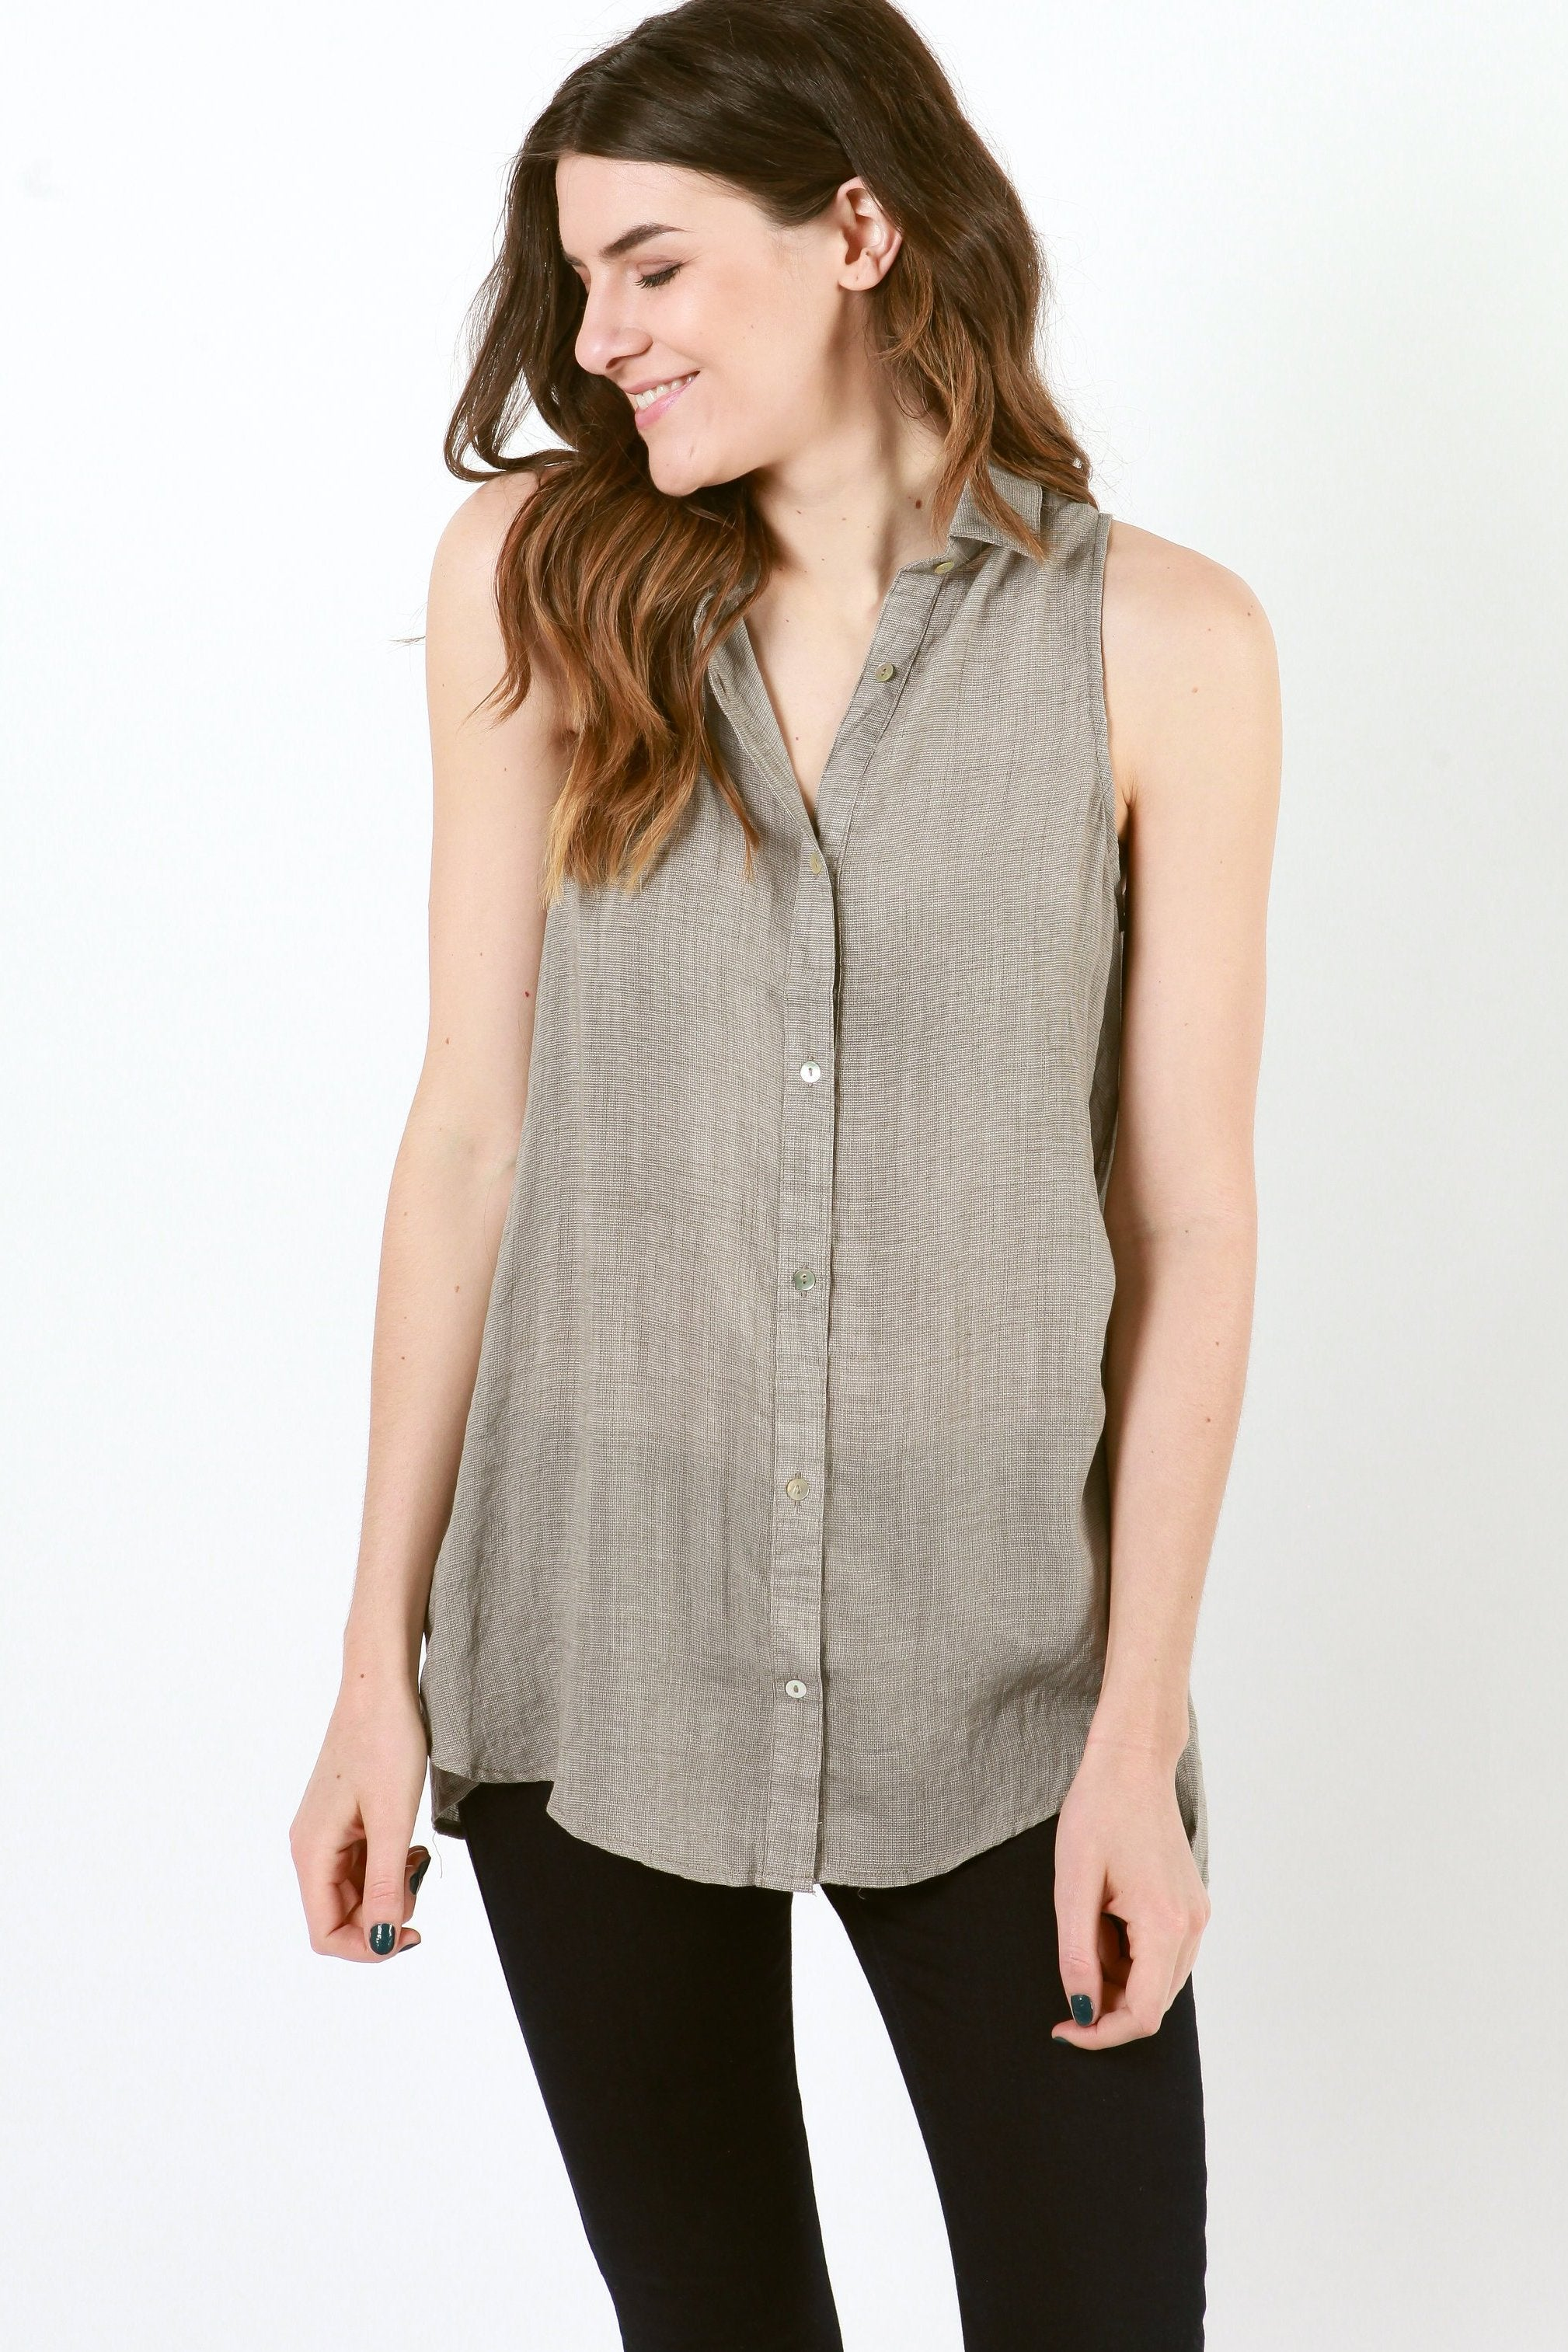 Nina Sleeveless Button Up Top - Mocha